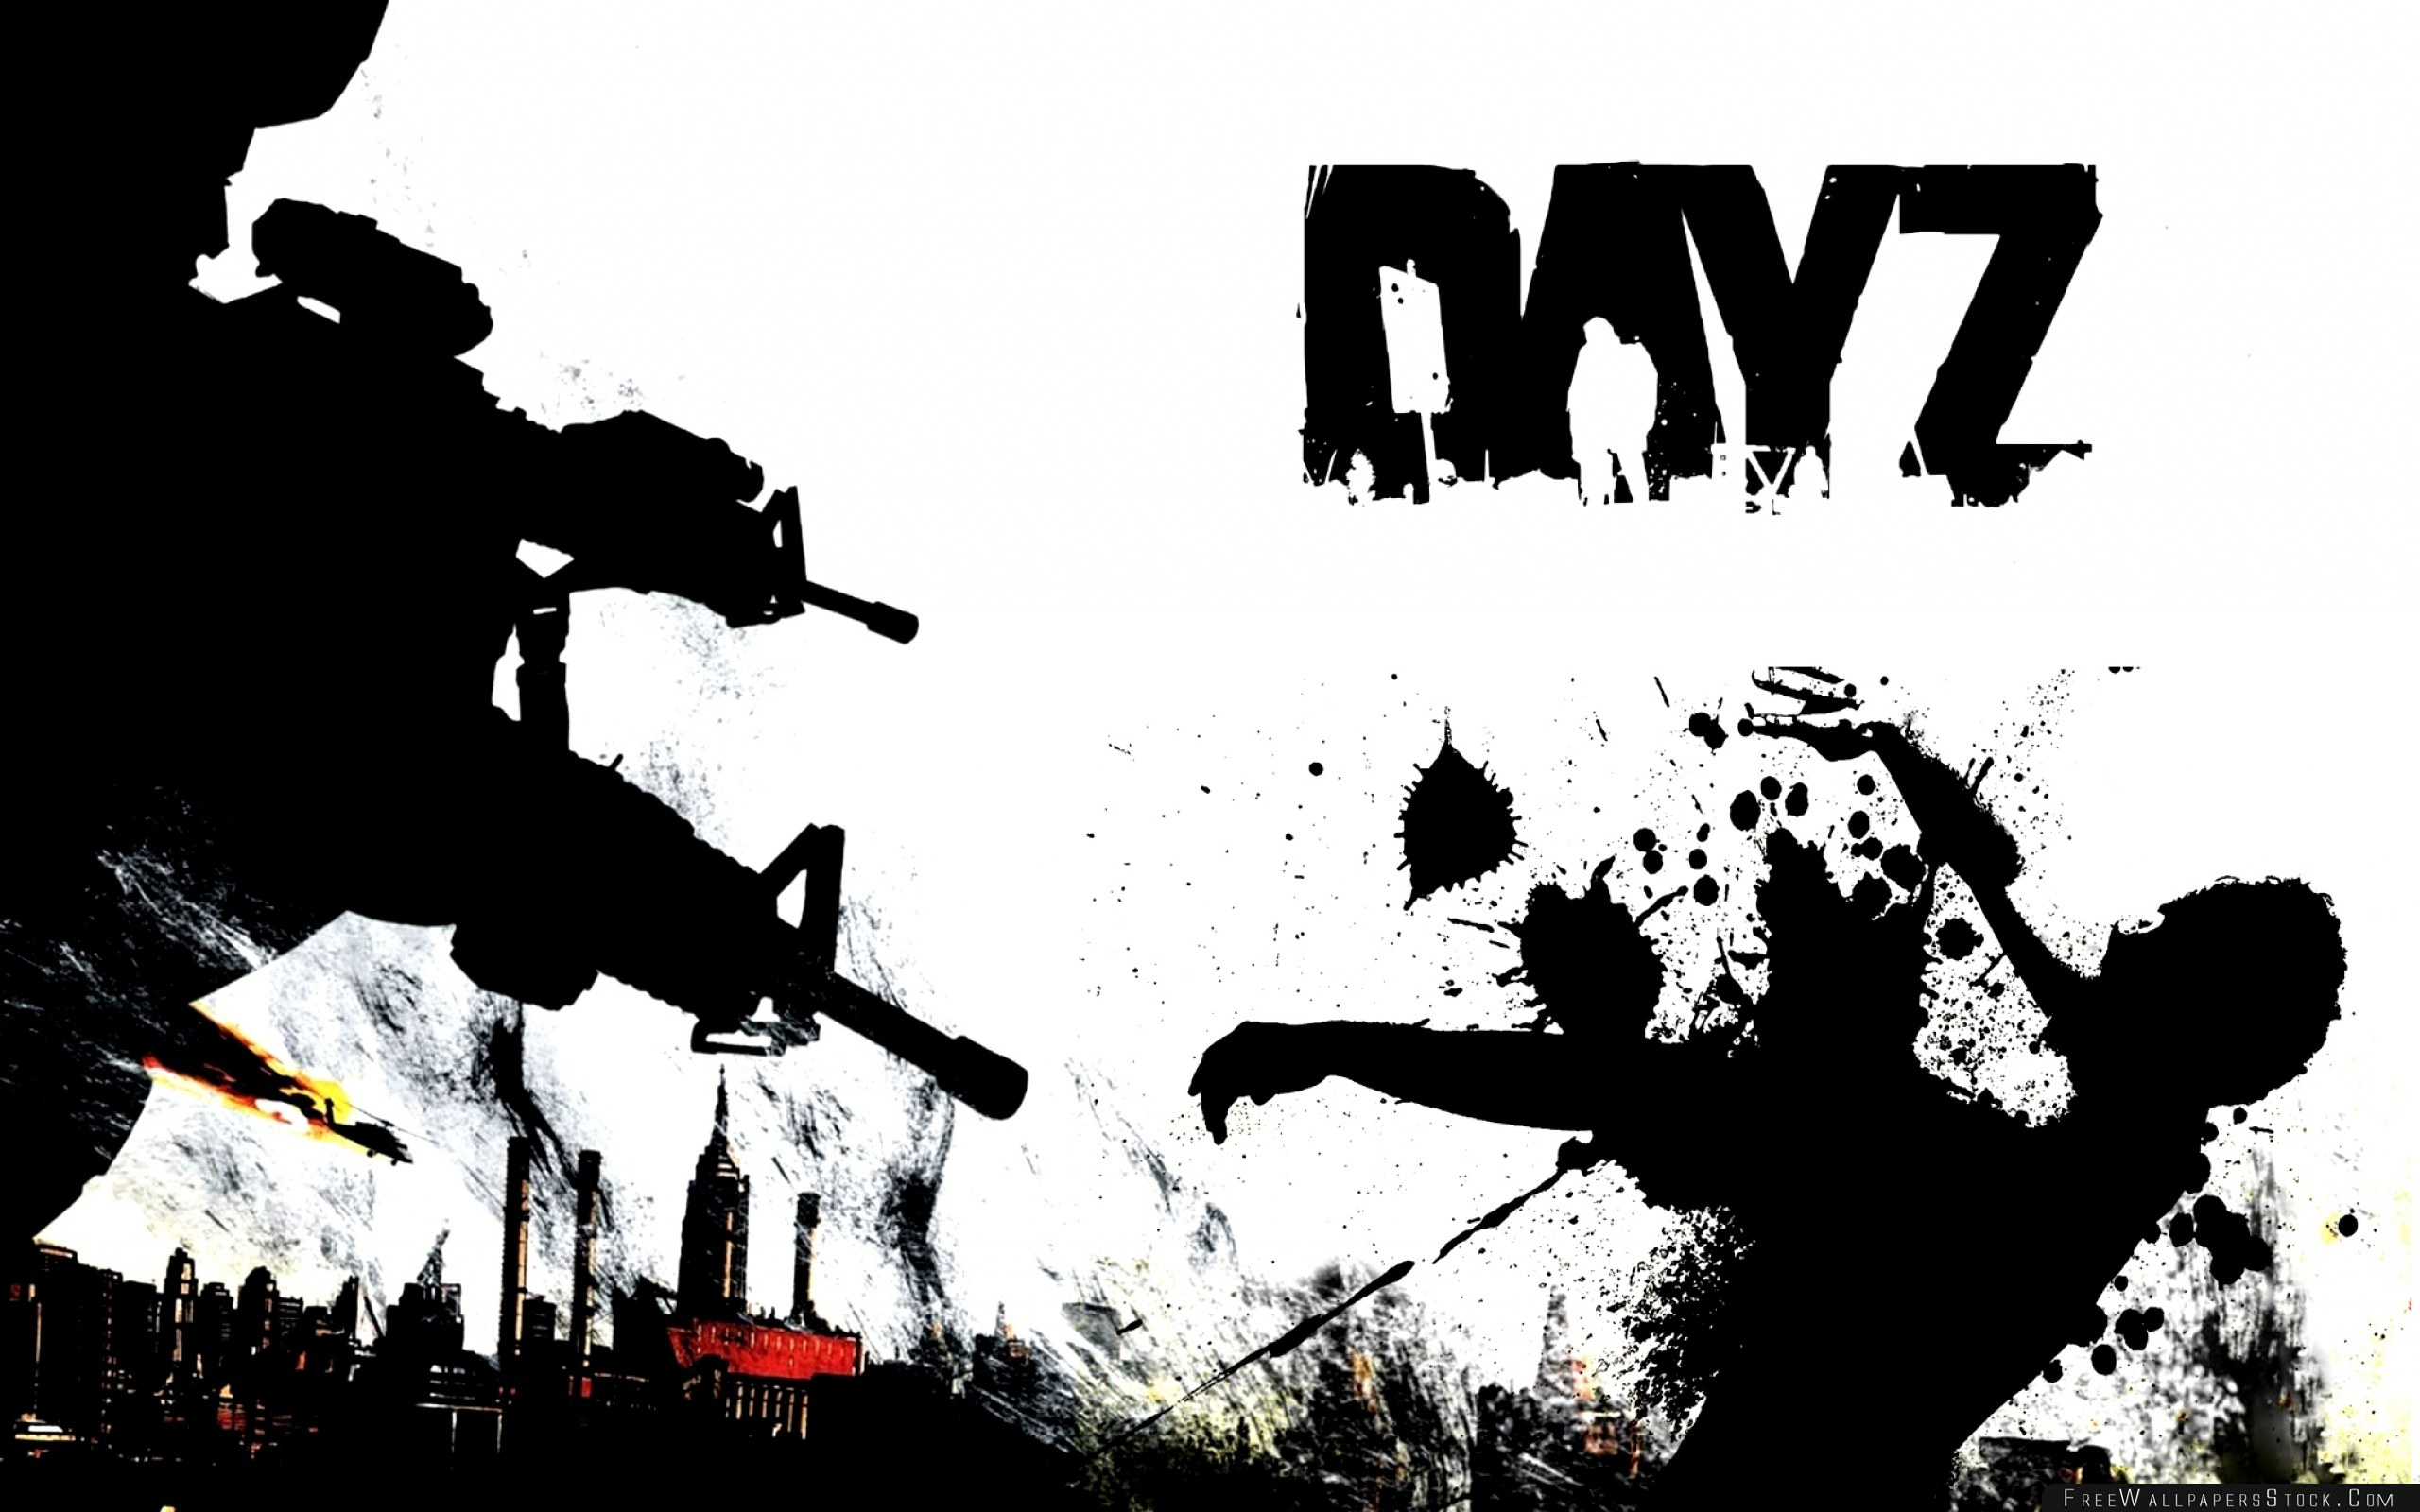 Download Free Wallpaper Dayz Day   Zombie Arma Weapons Survival